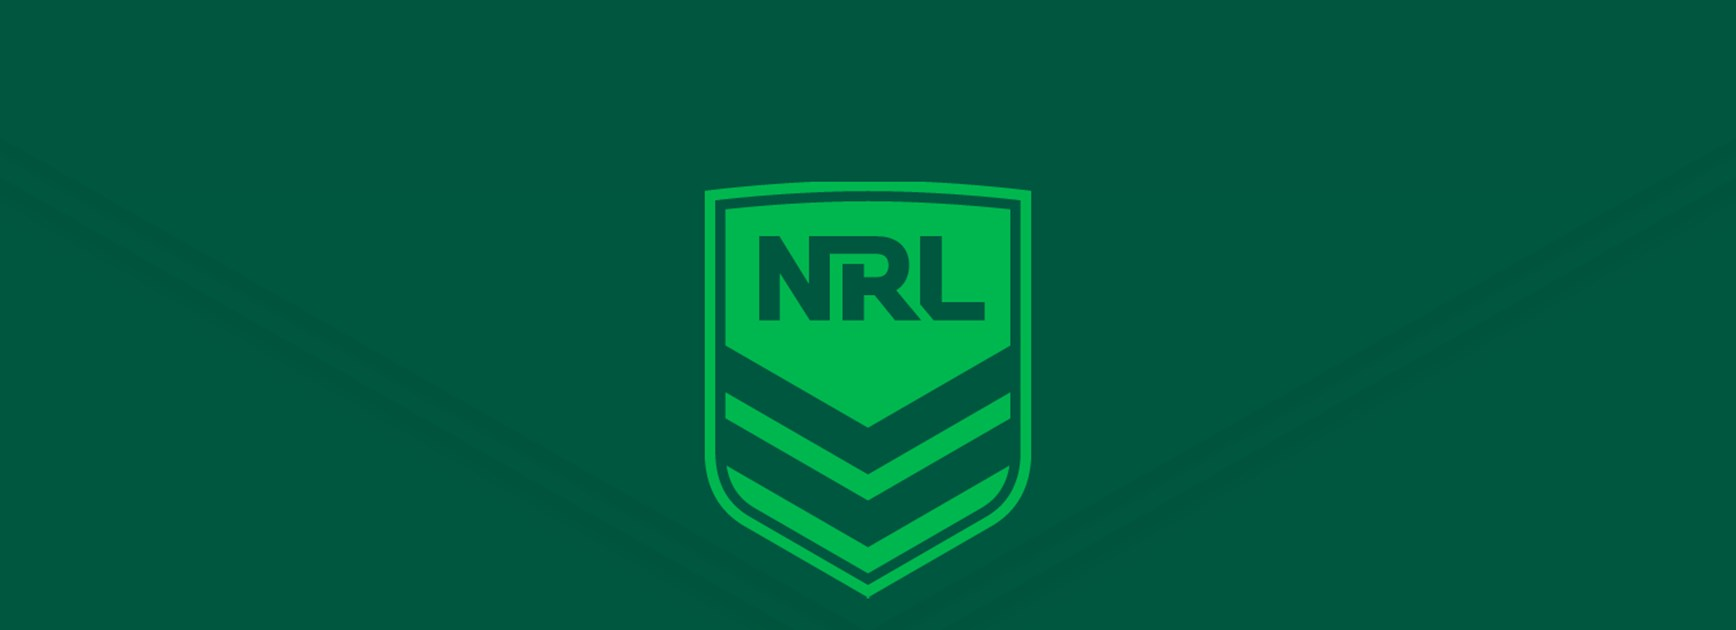 NRL unveils latest Power For Change campaign